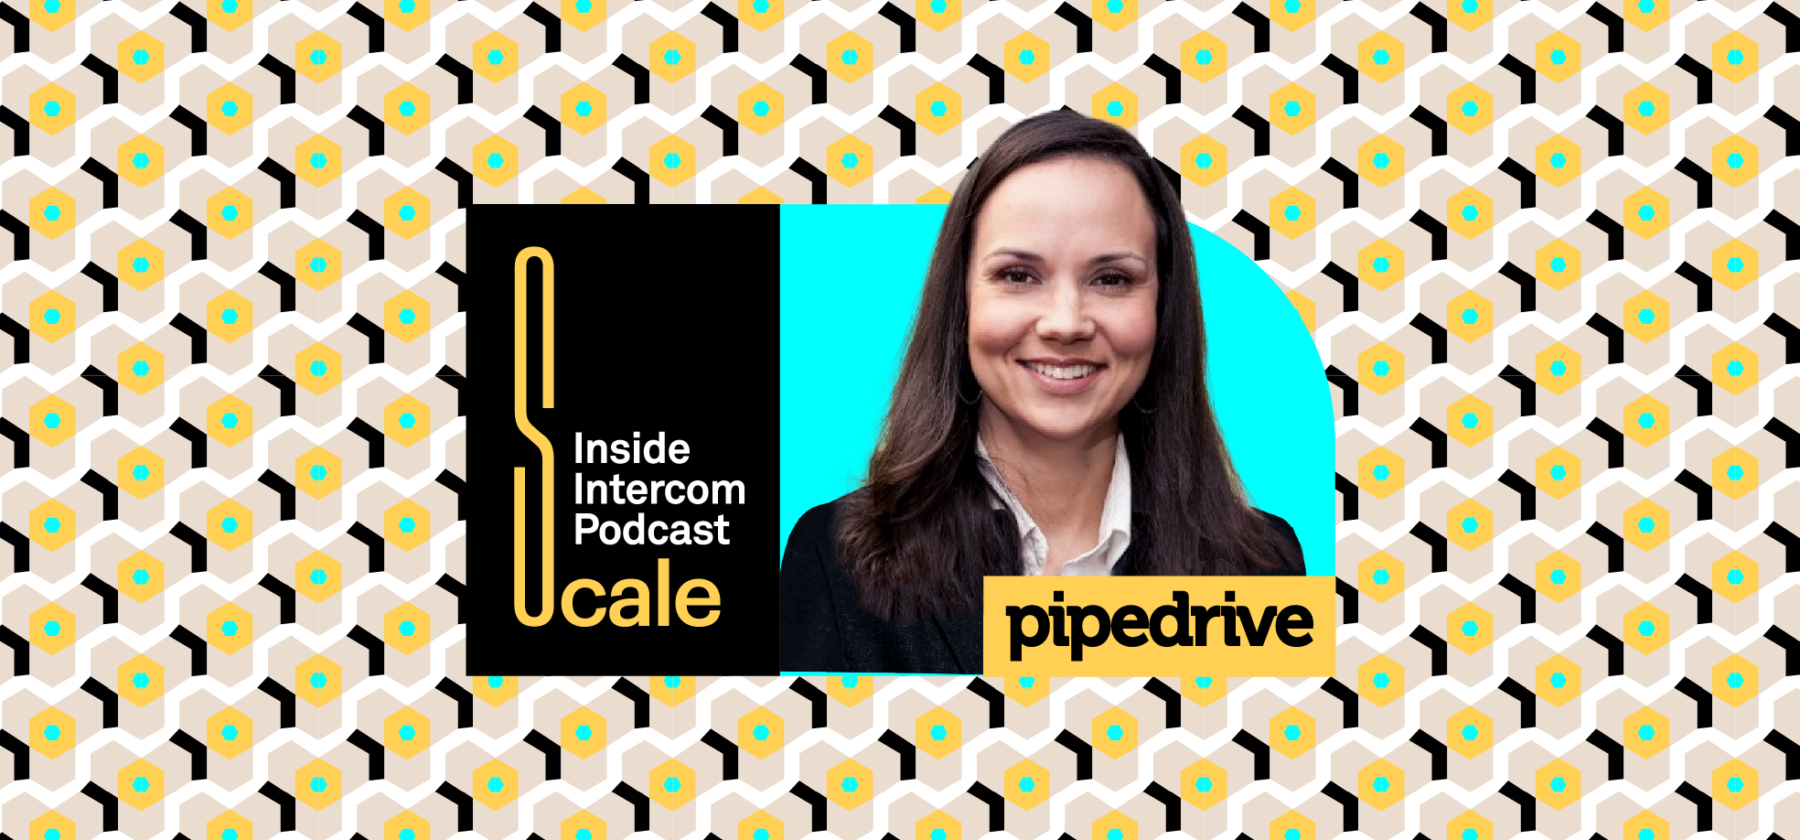 Scale Build Your Sales Team - Hero image of Tara Bryant, SVP Sales of PipeDream on the Scale Podcast by Insider Intercom